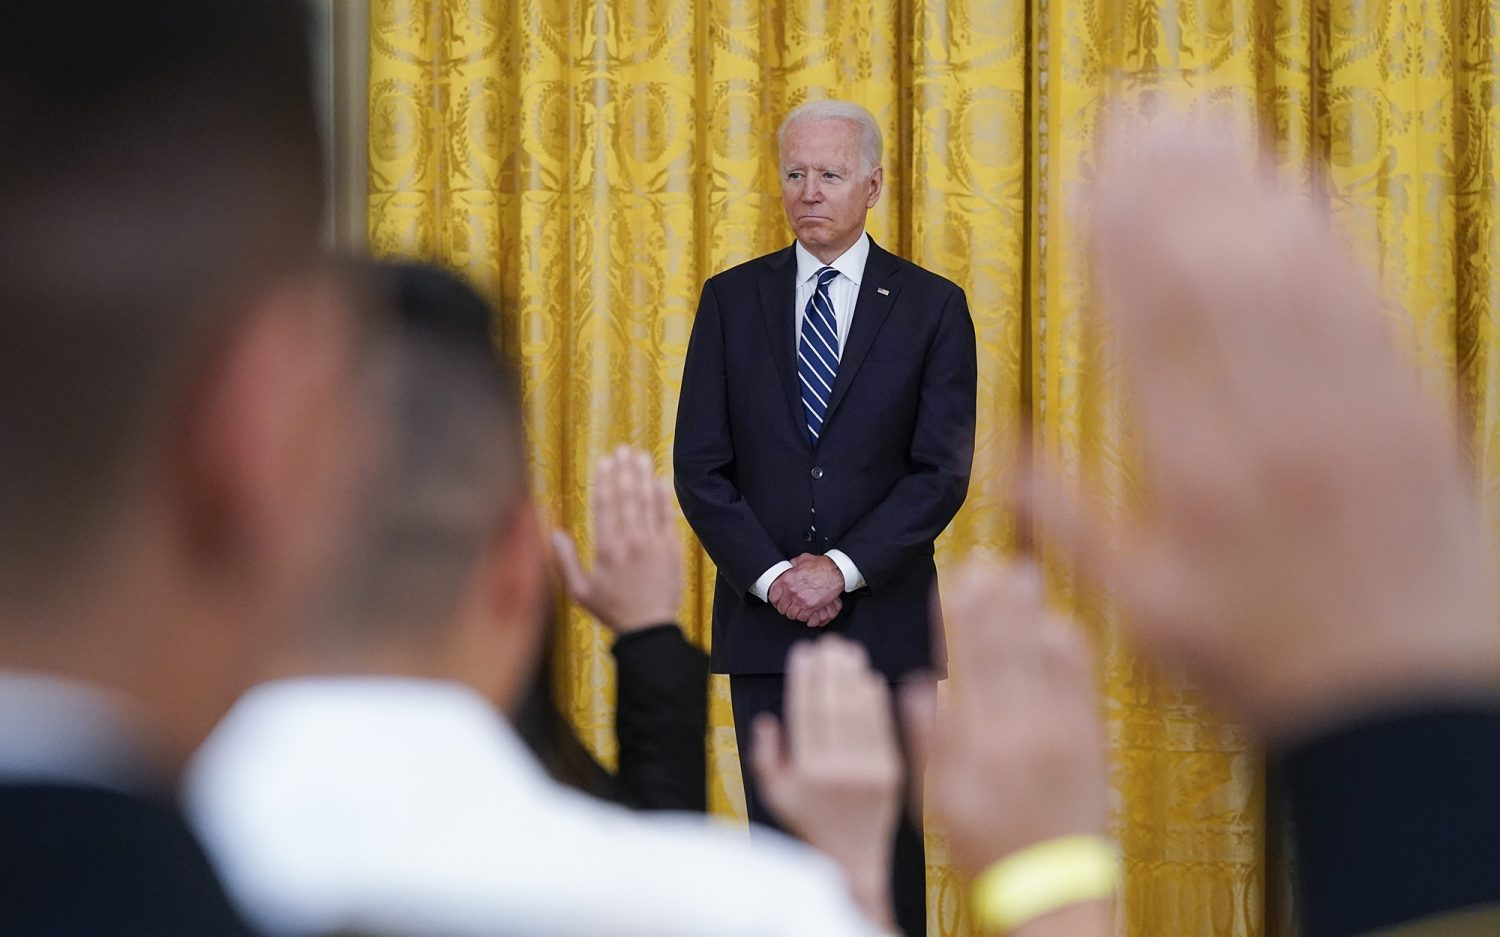 Biden to green card holders: Come join us